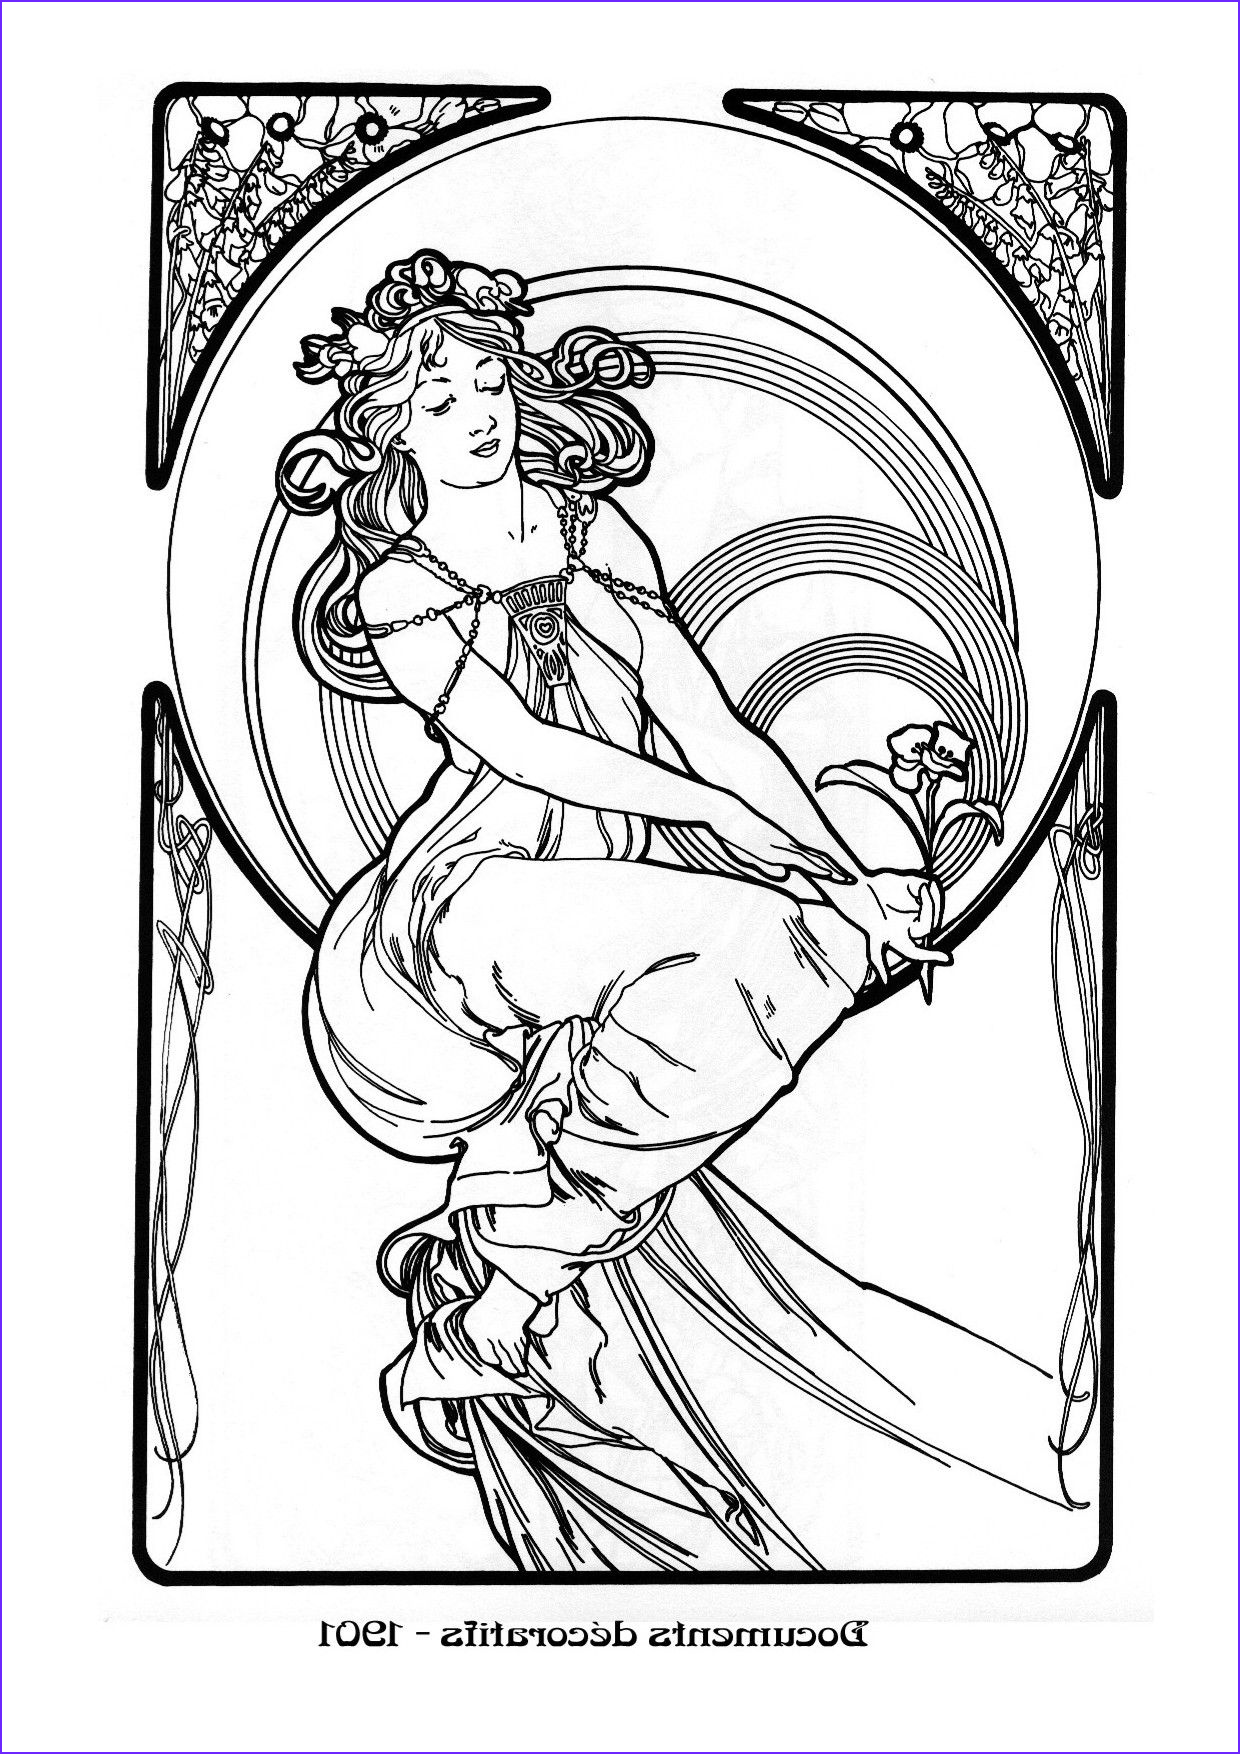 Mucha Coloring Book Luxury Photography Kleurplaat Naar Alfons Mucha Colouring Picture A Mucha